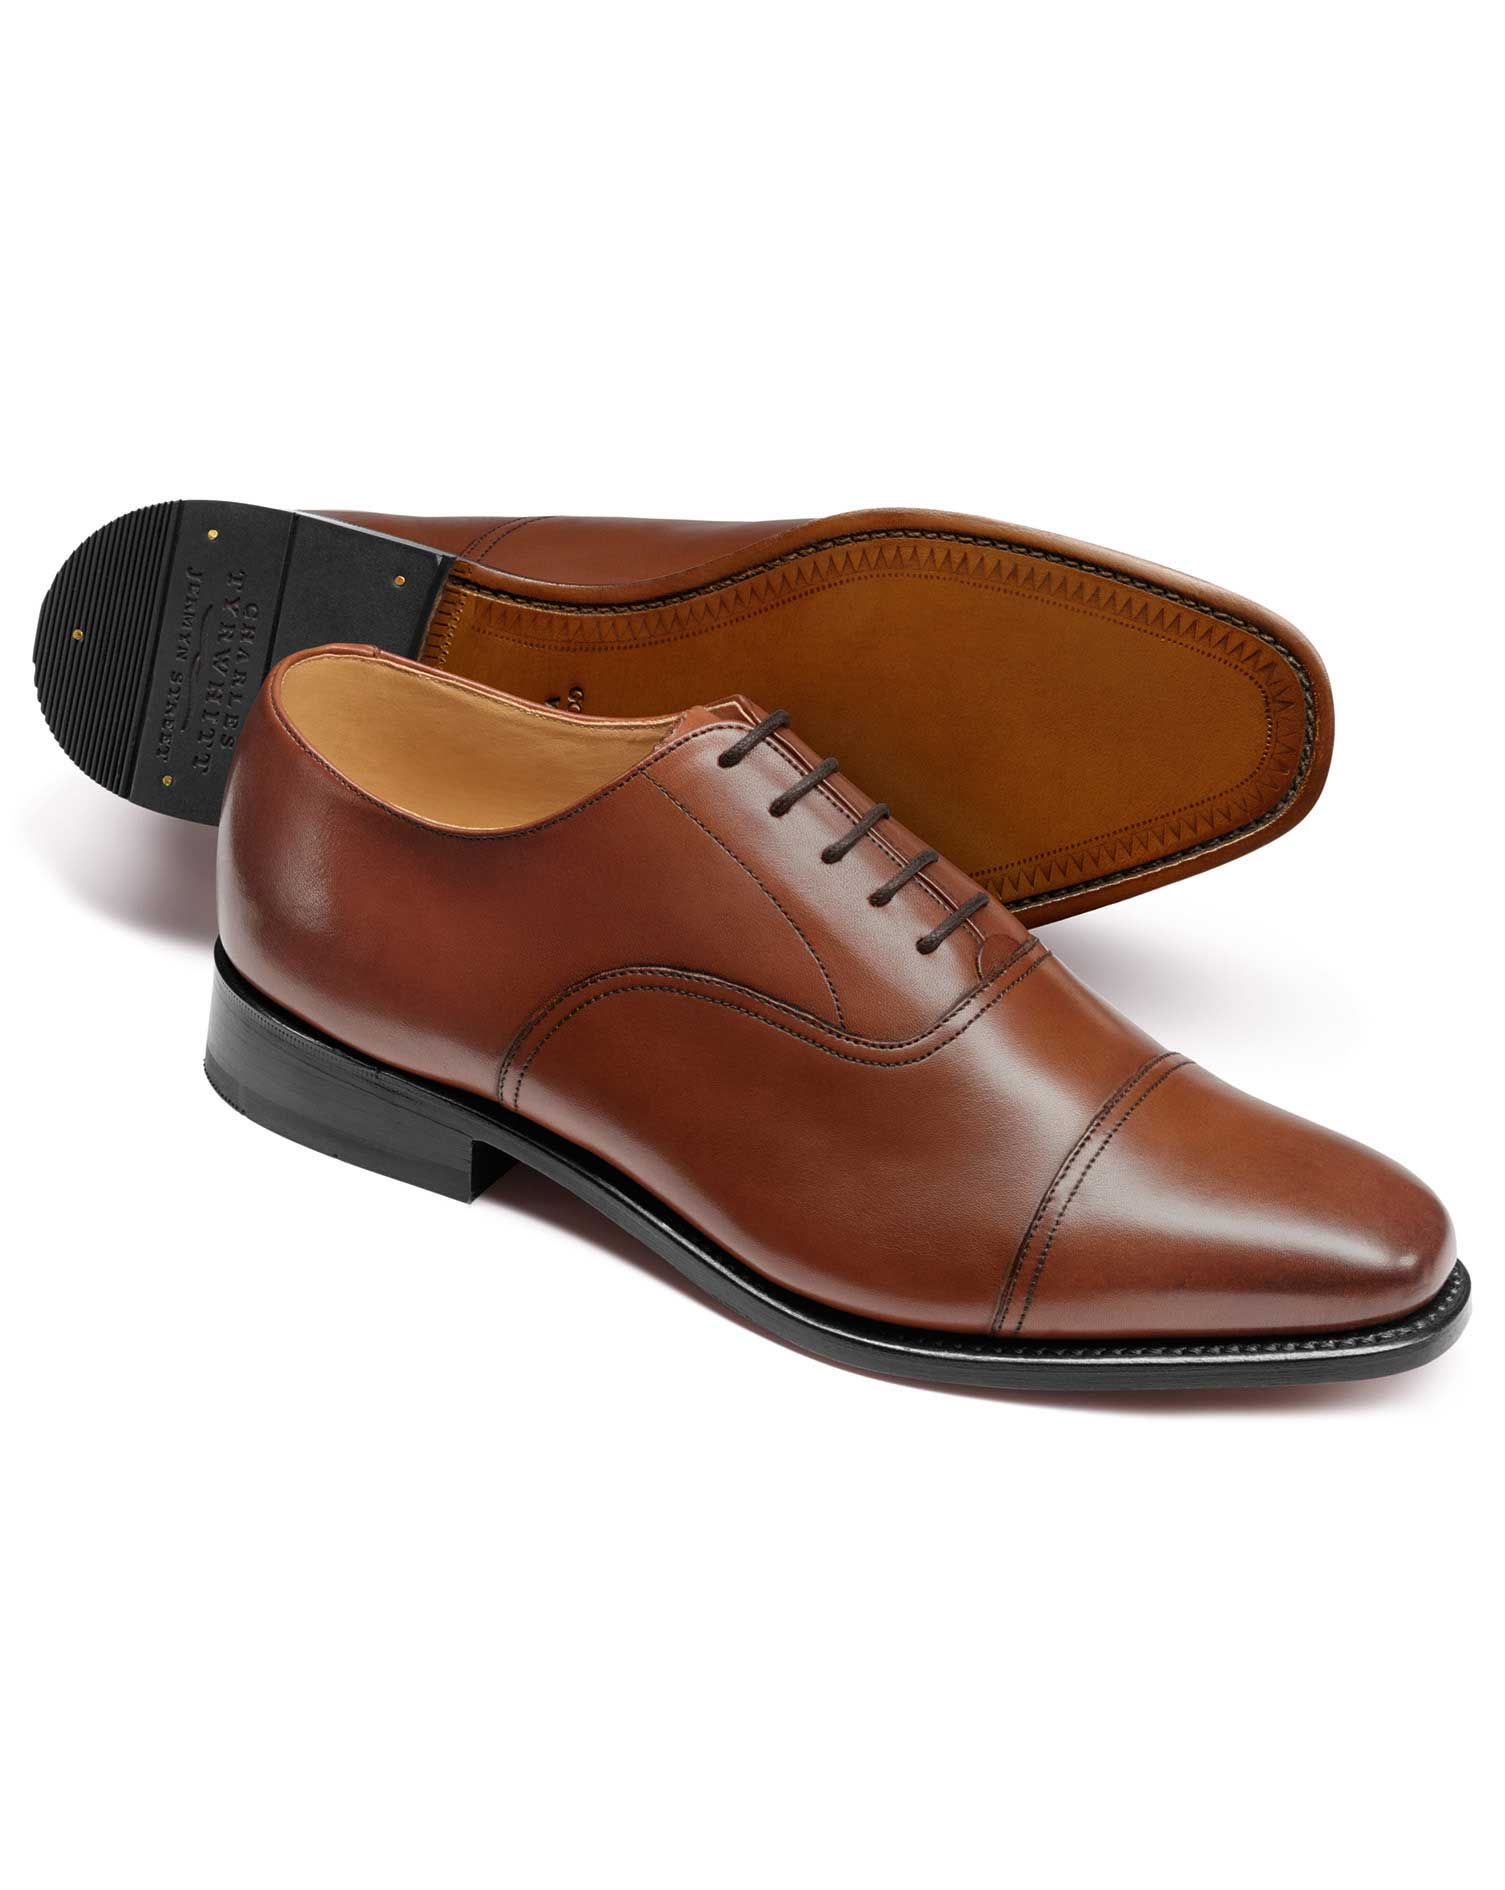 Tan Goodyear Welted Oxford Toe Cap Shoes Size 8 W by Charles Tyrwhitt